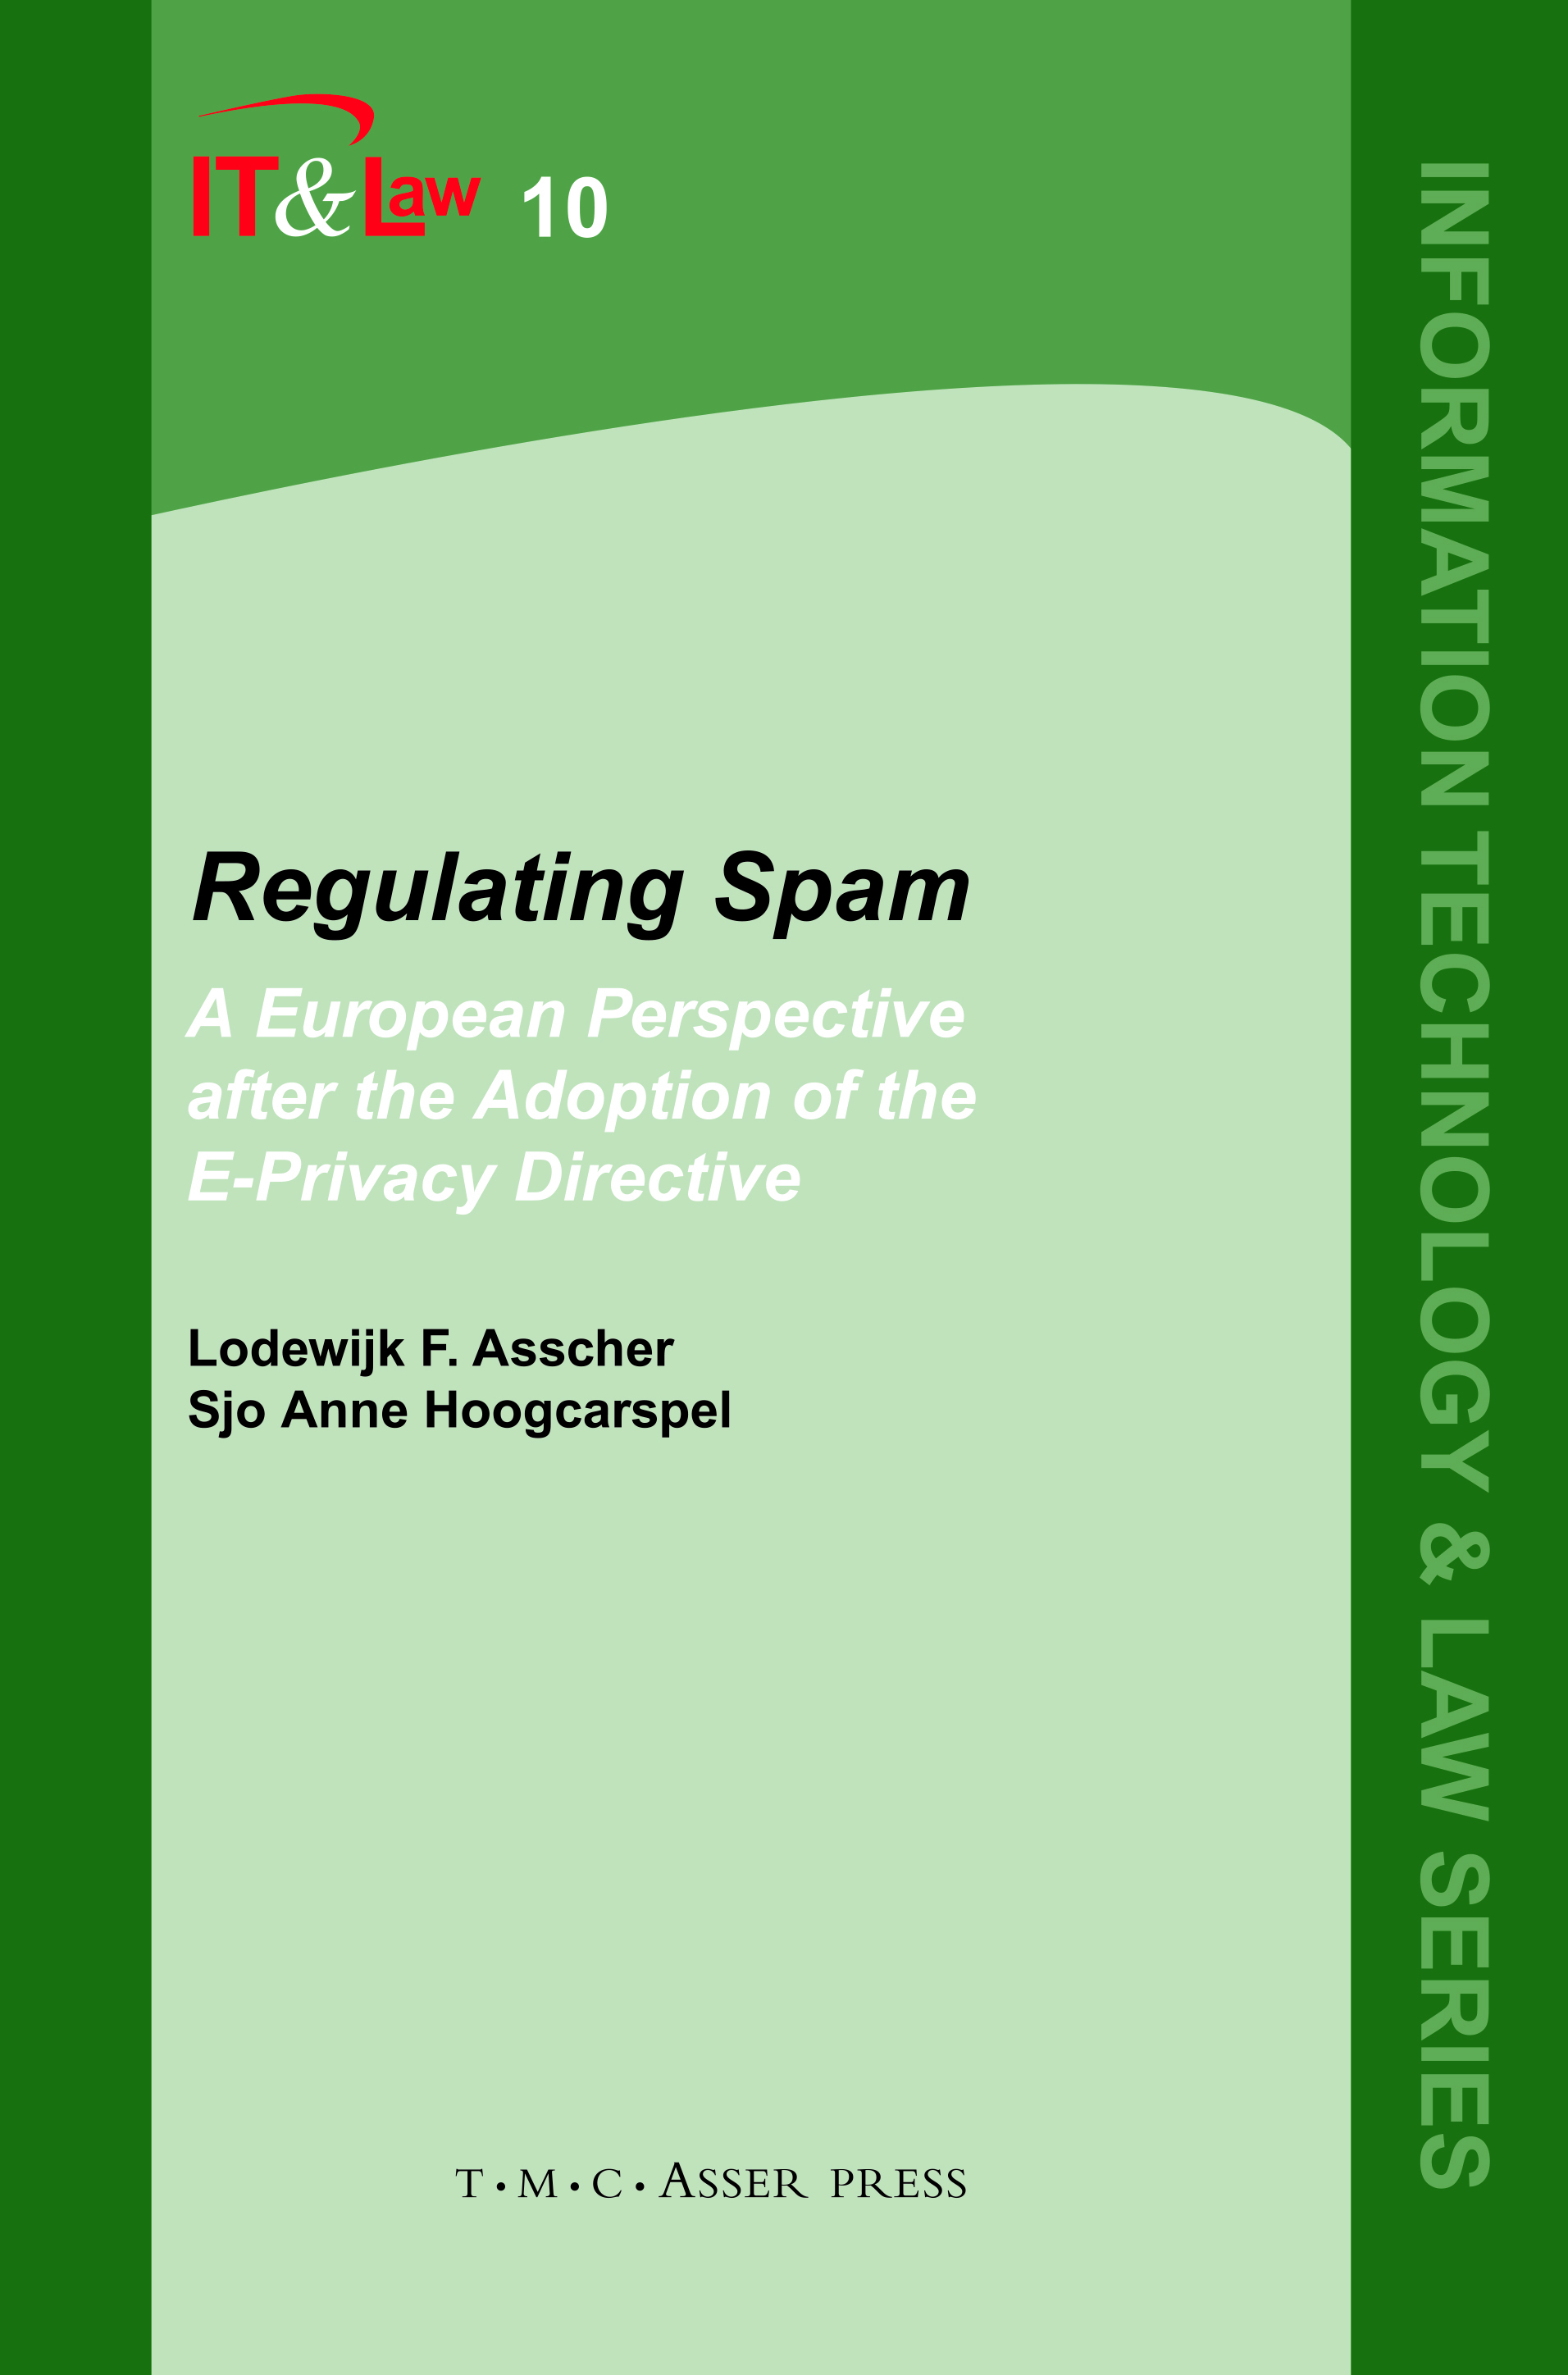 Regulating Spam - A European Perspective after the Adoption of the E-Privacy Directive